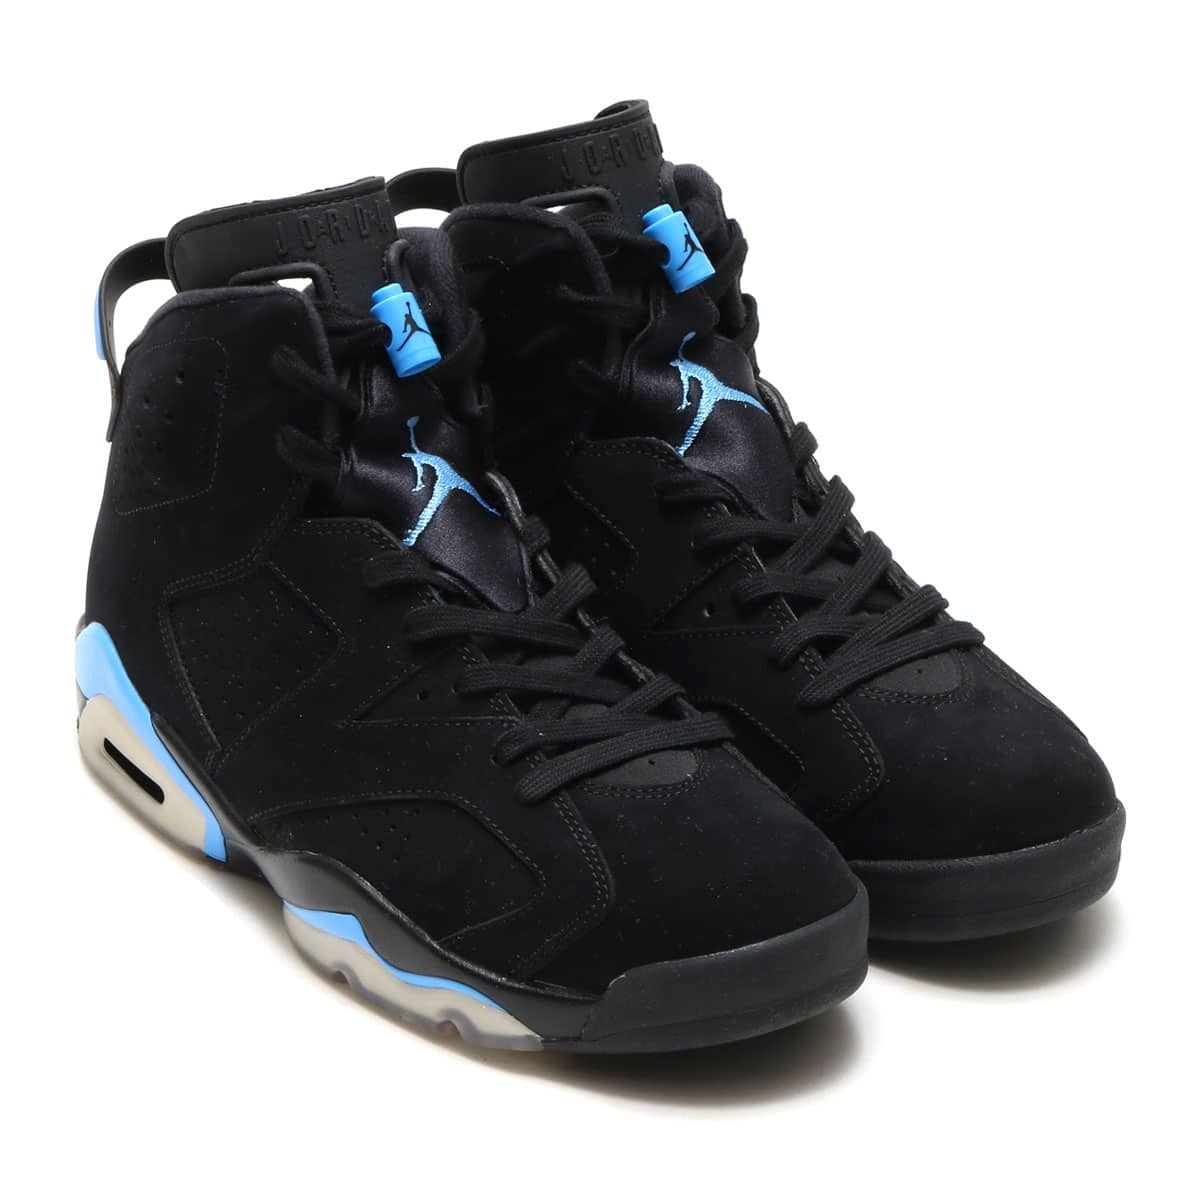 JORDAN BRAND AIR JORDAN 6 RETRO BLACK/UNIVERSITY BLUE_photo_large